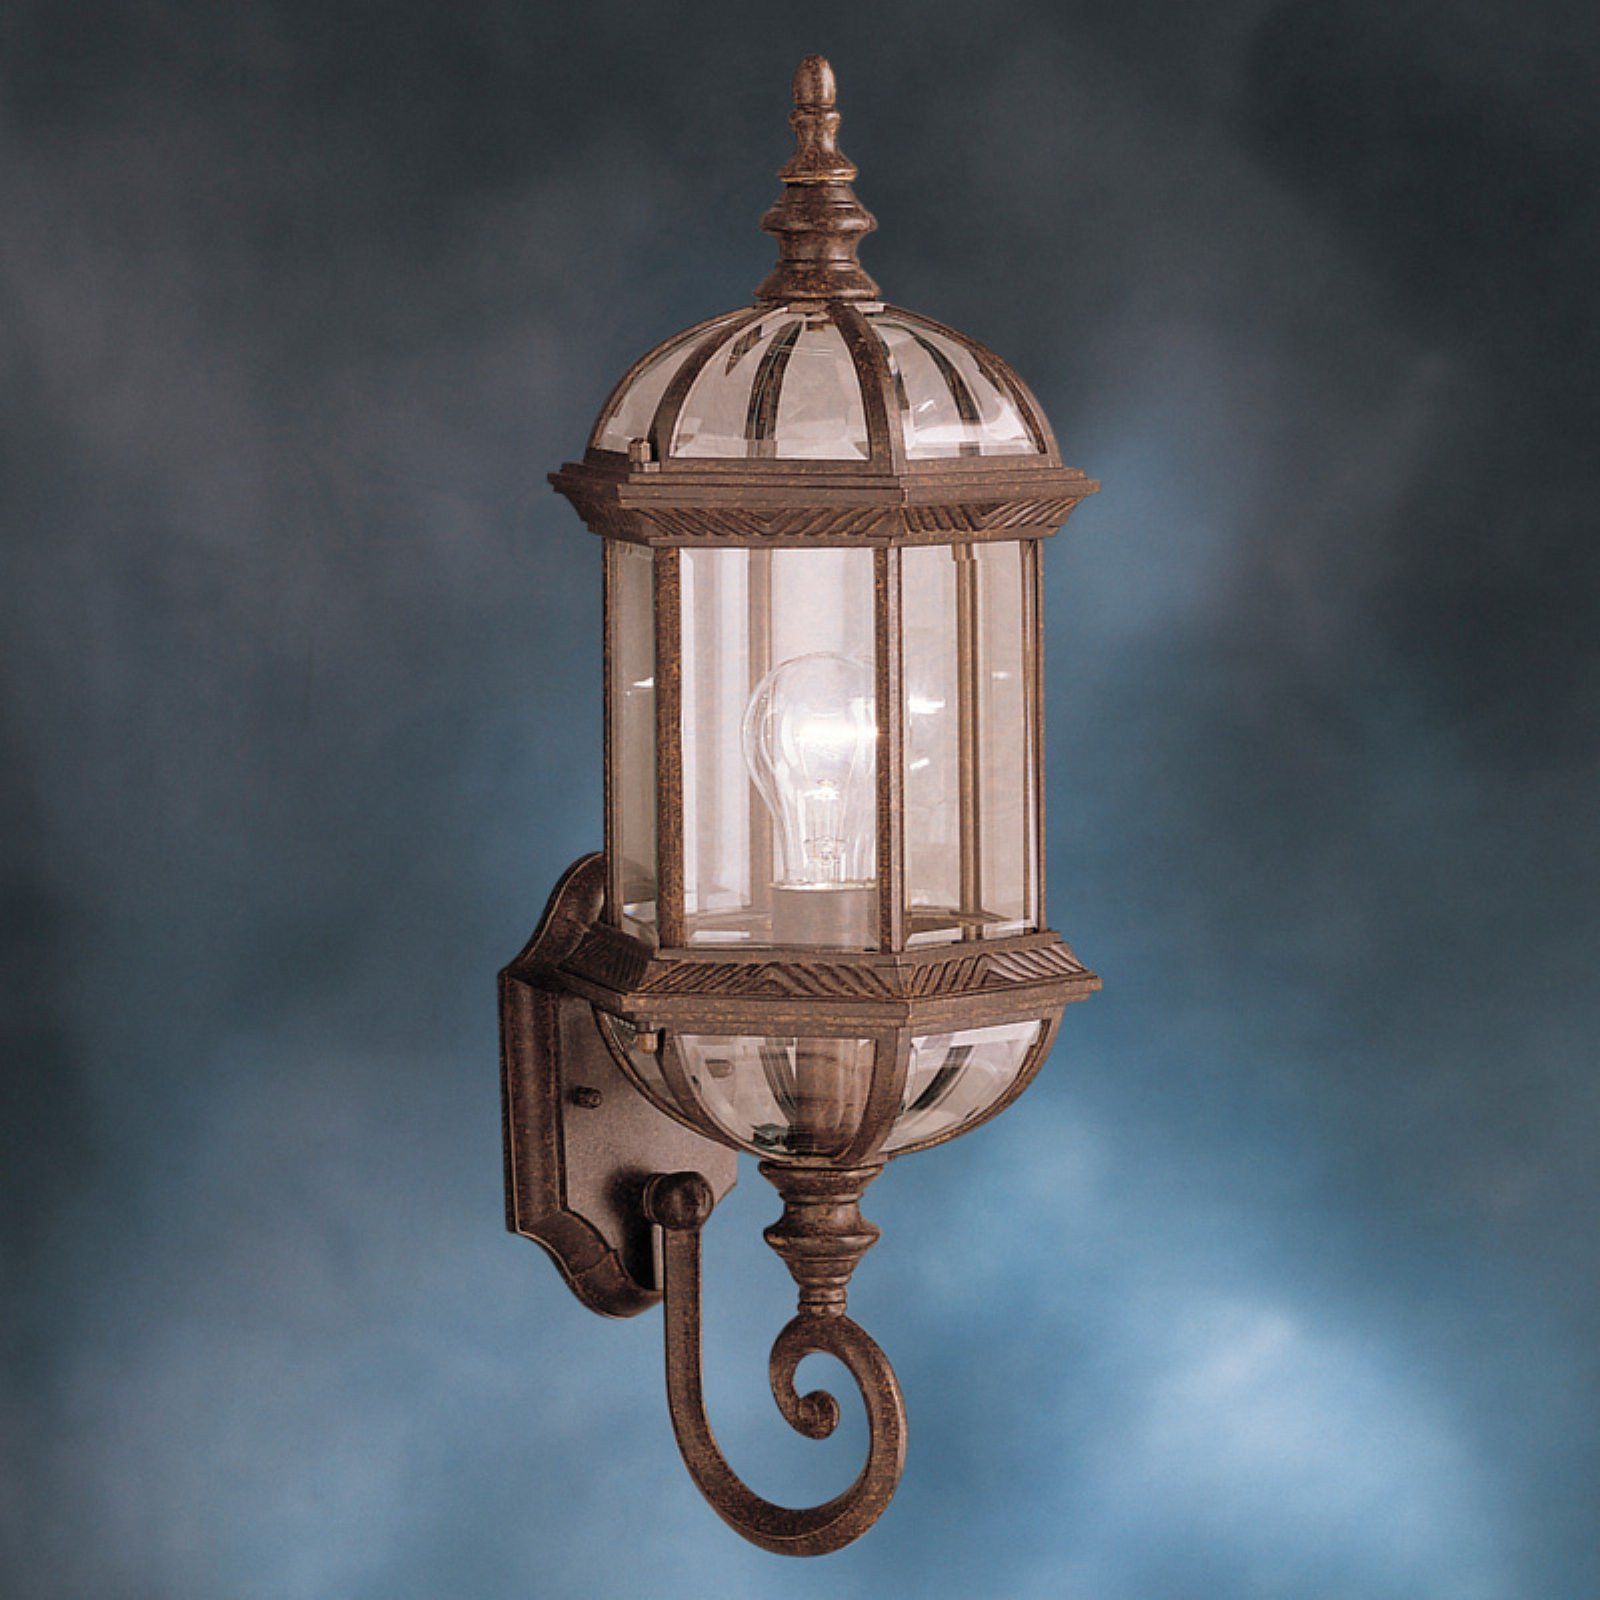 Kichler Barrie 973 Outdoor Wall Lantern